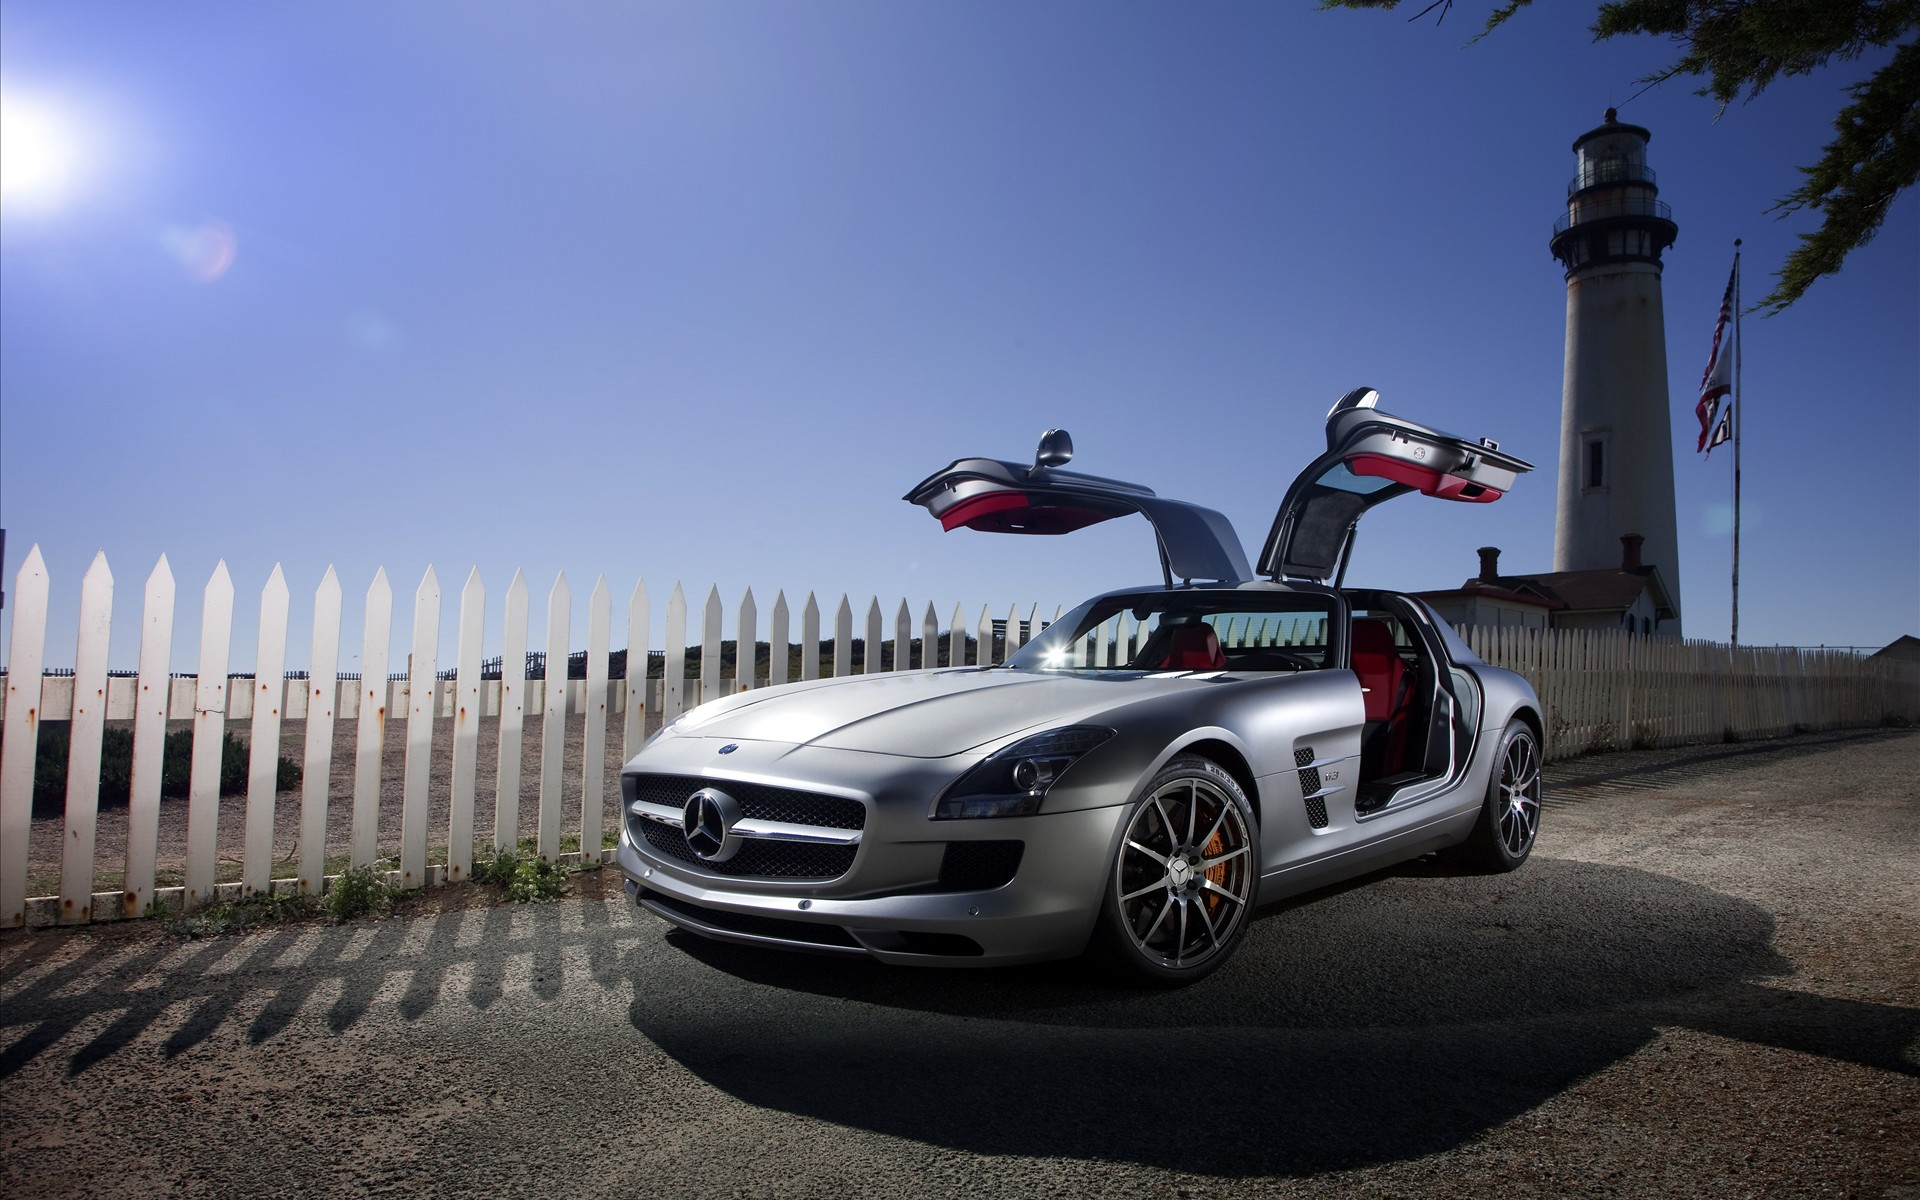 2011 Mercedes Benz SLS AMG 17 400.09 Kb